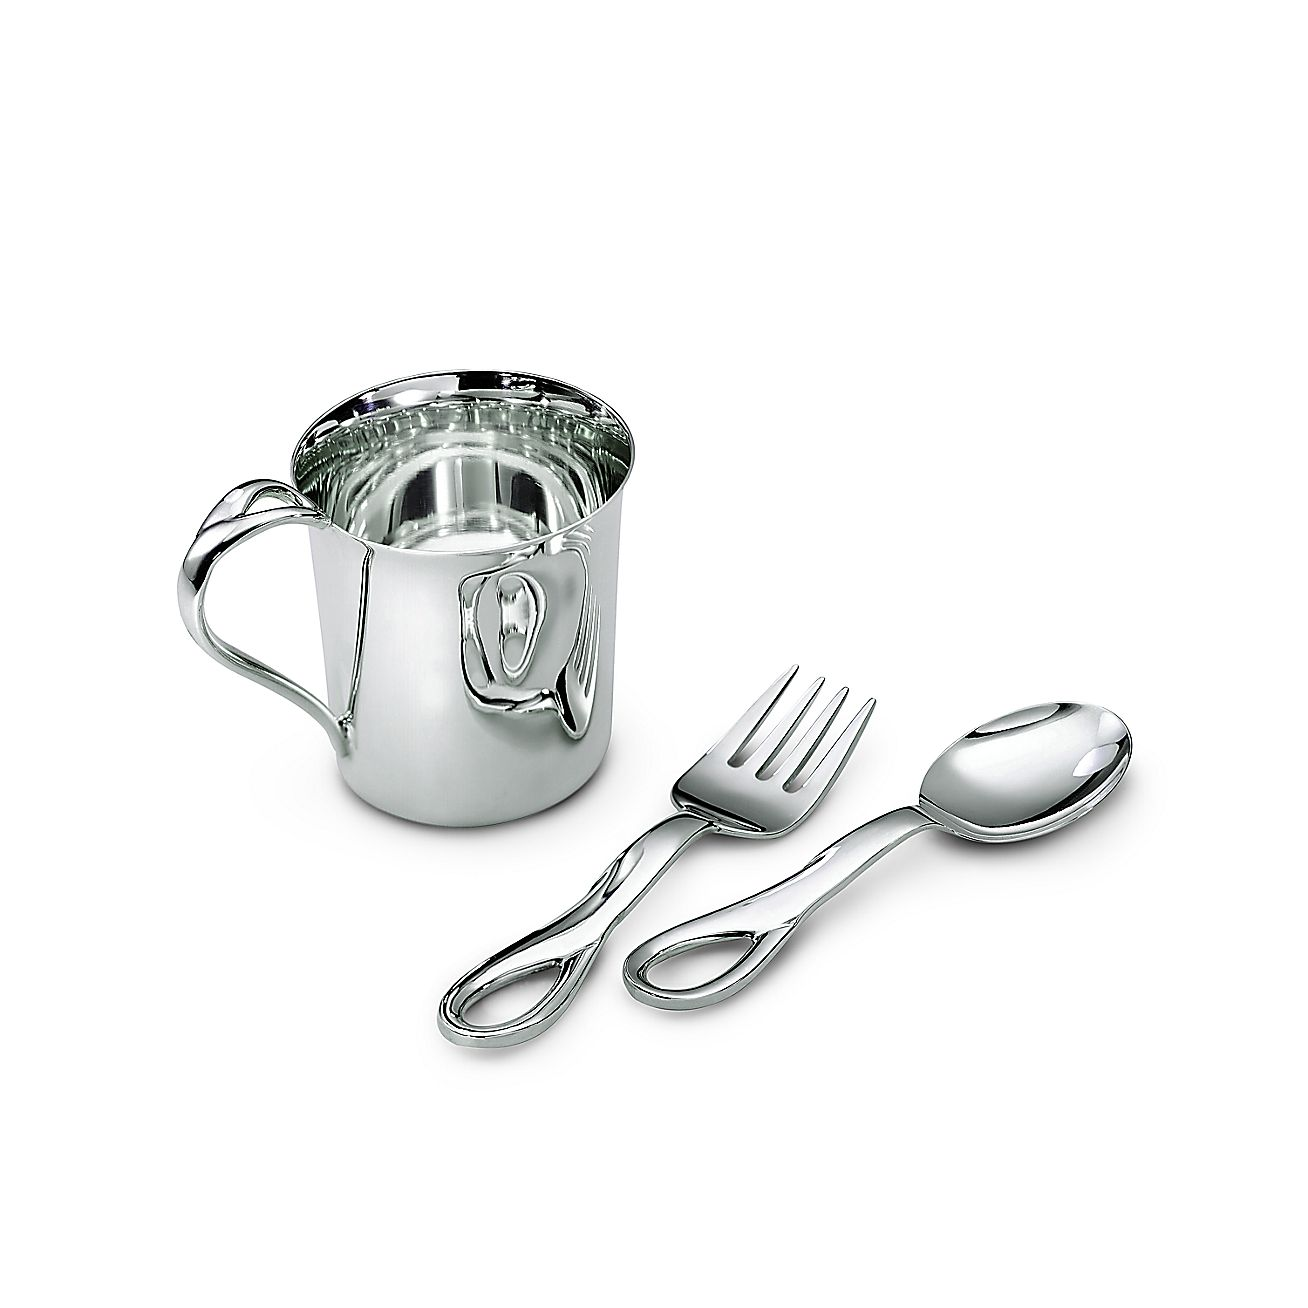 Tiffany Baby Gifts Australia : Elsa peretti padova three piece baby set in sterling